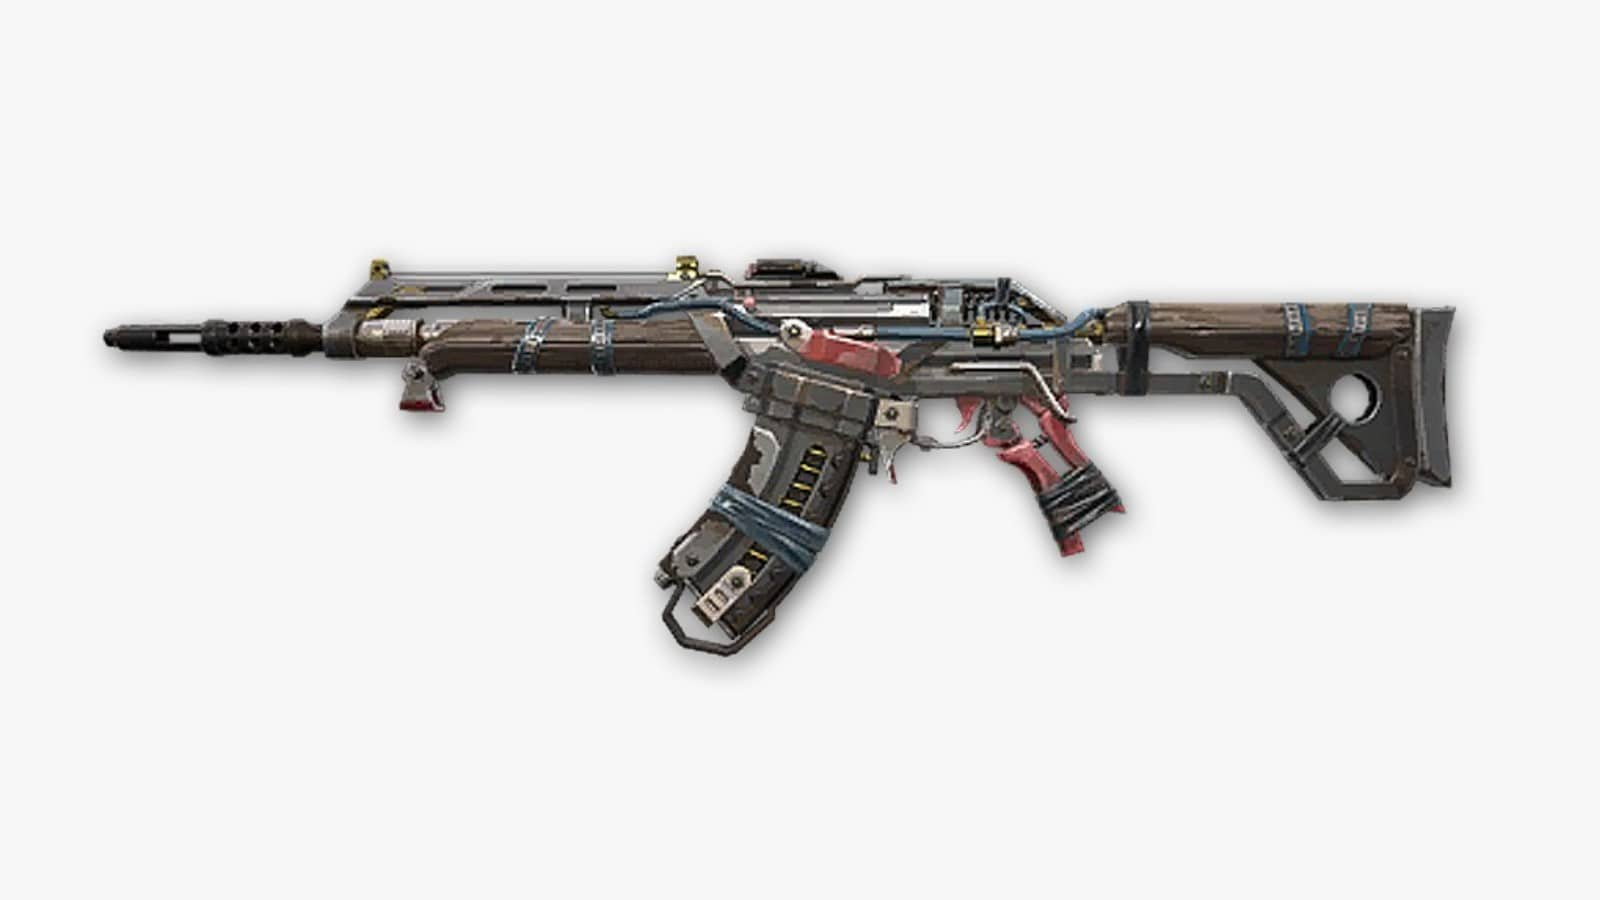 Top 5 Non-Animated Vandal Skins